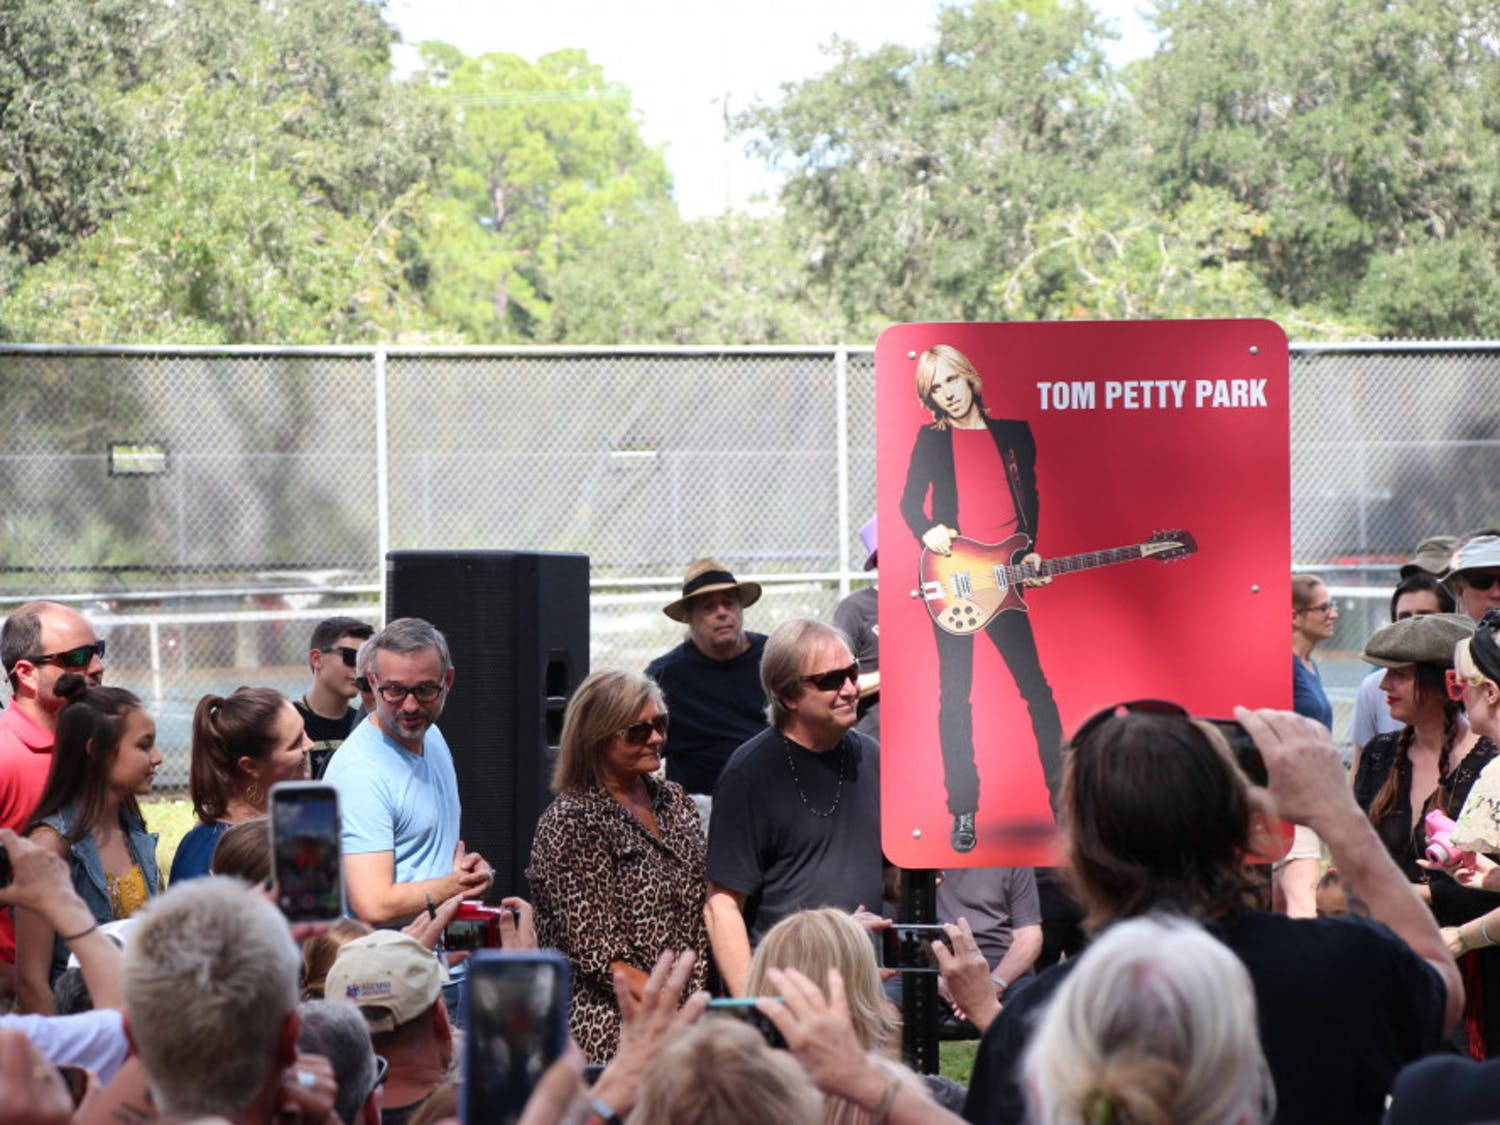 Tom Petty's family members and fans surround the newly installed sign in Tom Petty Park at the dedication ceremony held Oct. 20, 2018. Bruce and Adria Petty, brother and daughter to Tom, made short remarks before the unveiling.